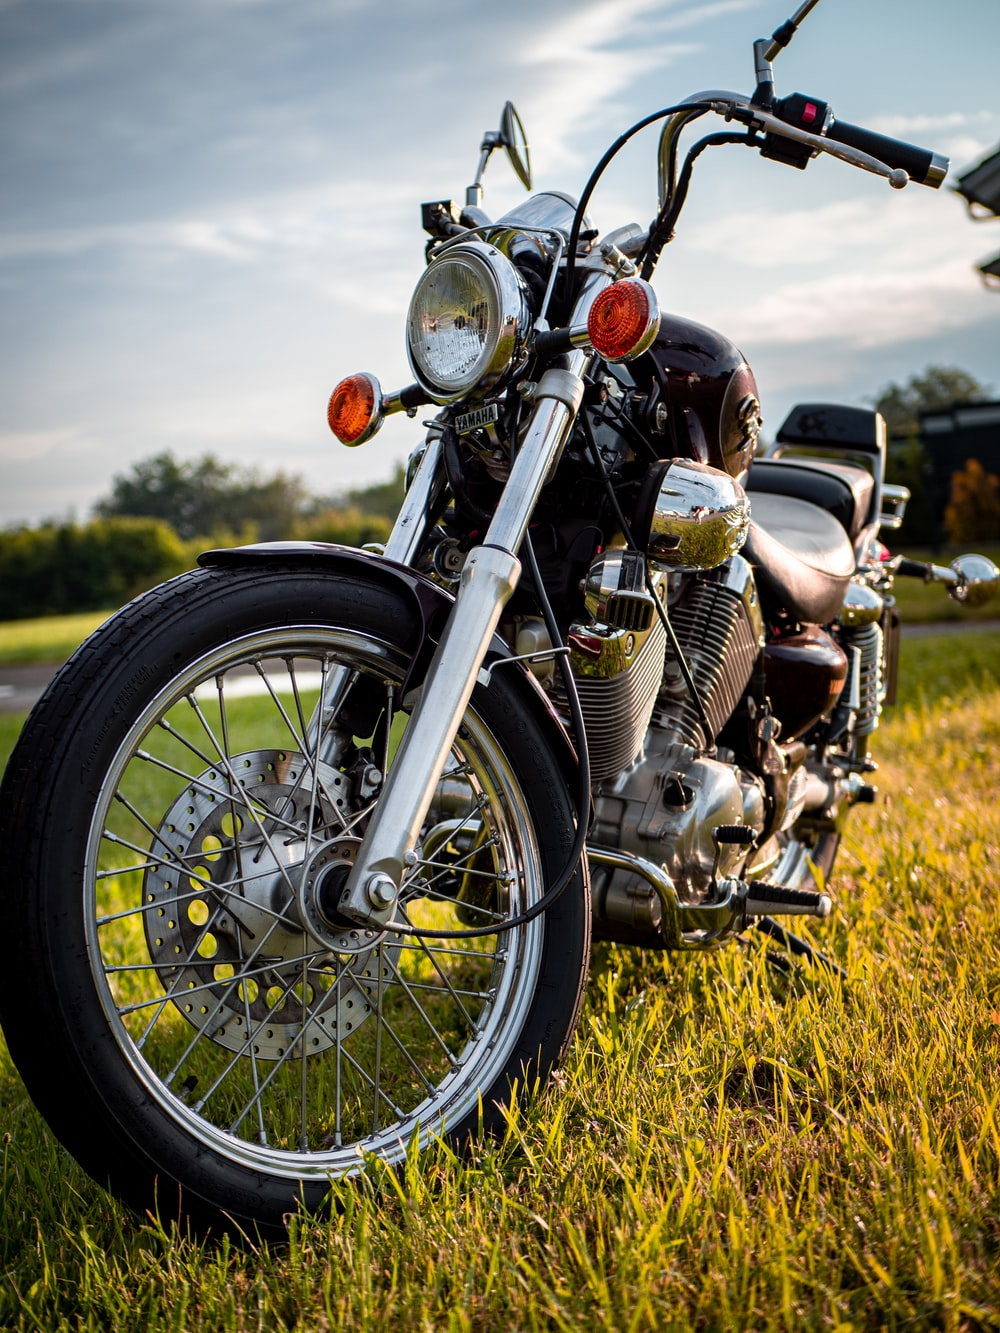 black and silver cruiser motorcycle on green grass field during daytime